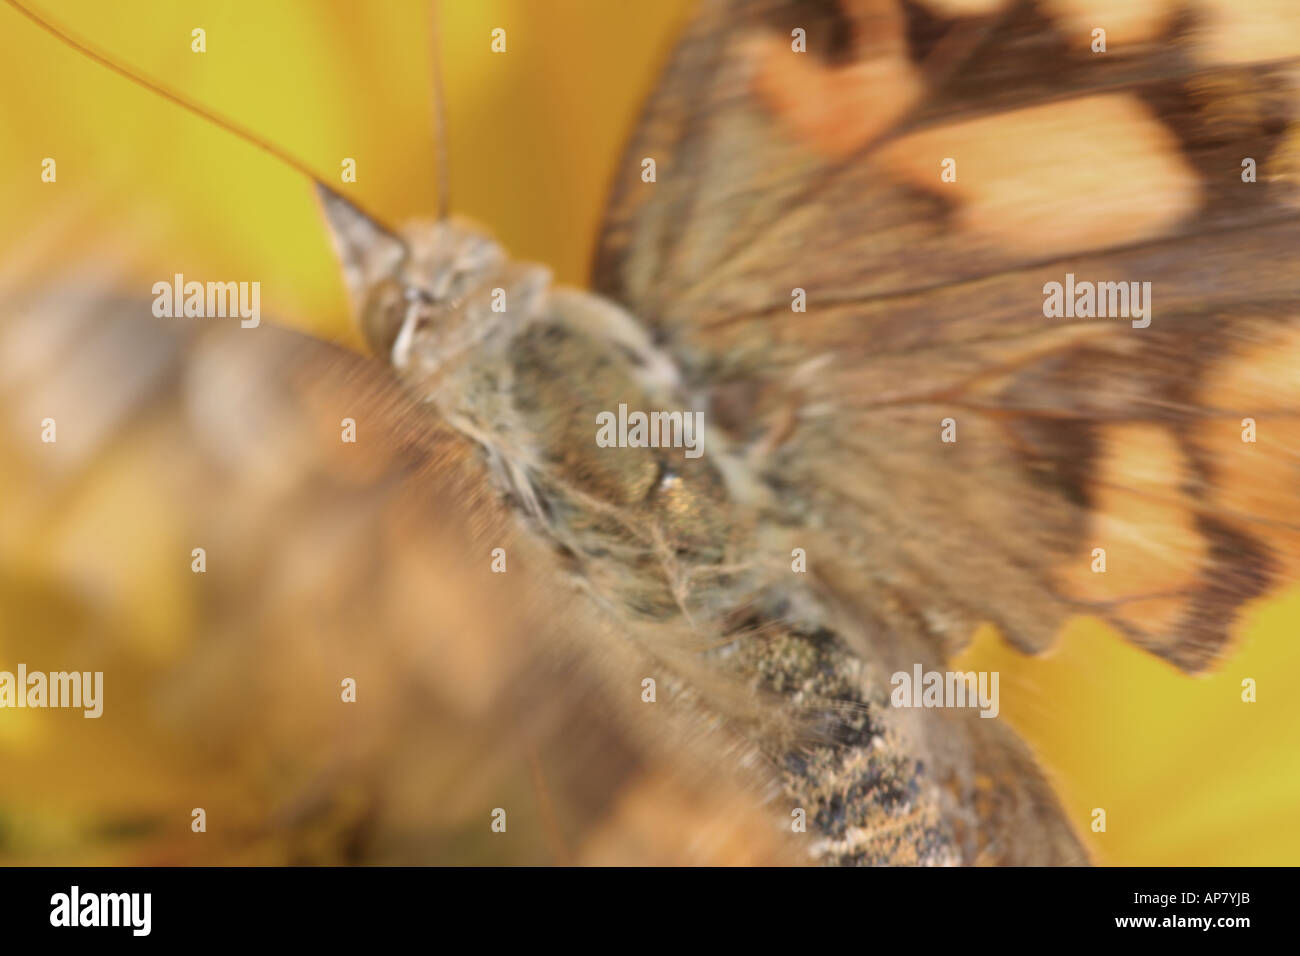 Illinois Butterfly Stock Photos & Illinois Butterfly Stock Images ...